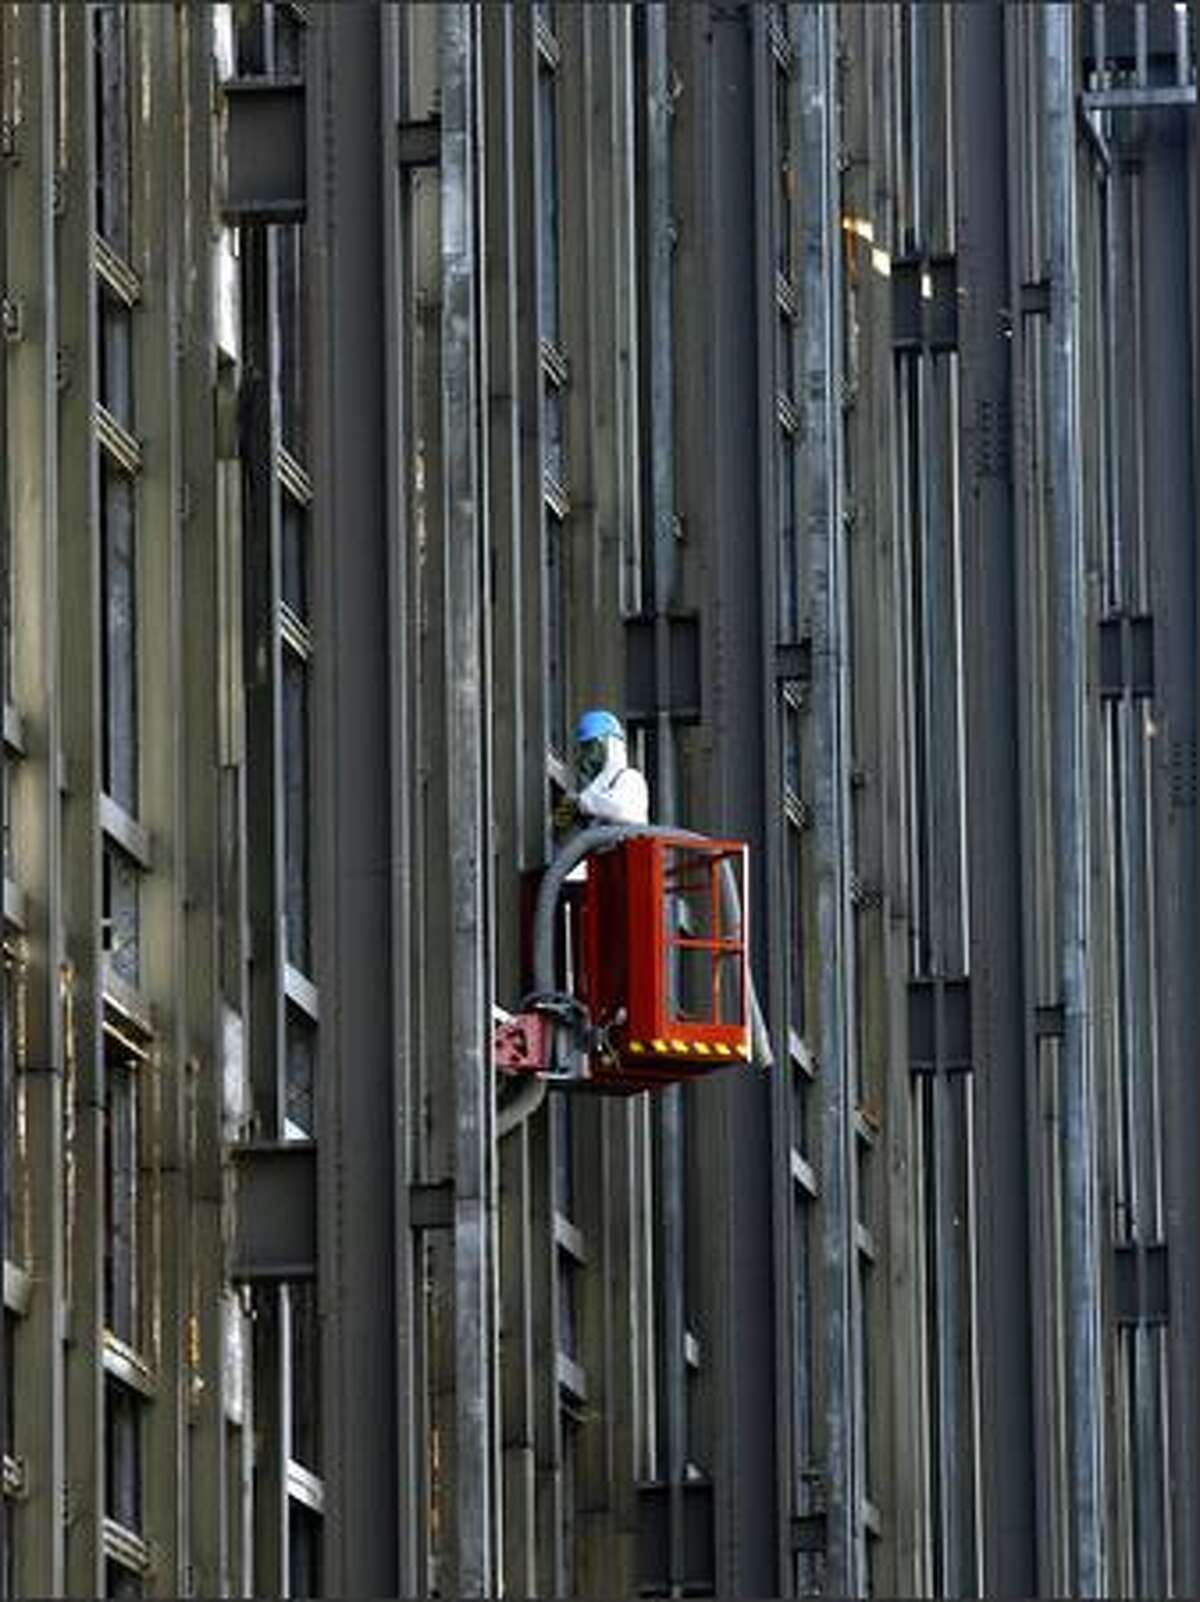 A man works at the steel facade of the former Palace of the Republic, the parliament building of former East Germany, in Berlin. The former parliament building will be demolished and work is expected to continue until December 2008. (AP Photo/Markus Schreiber)